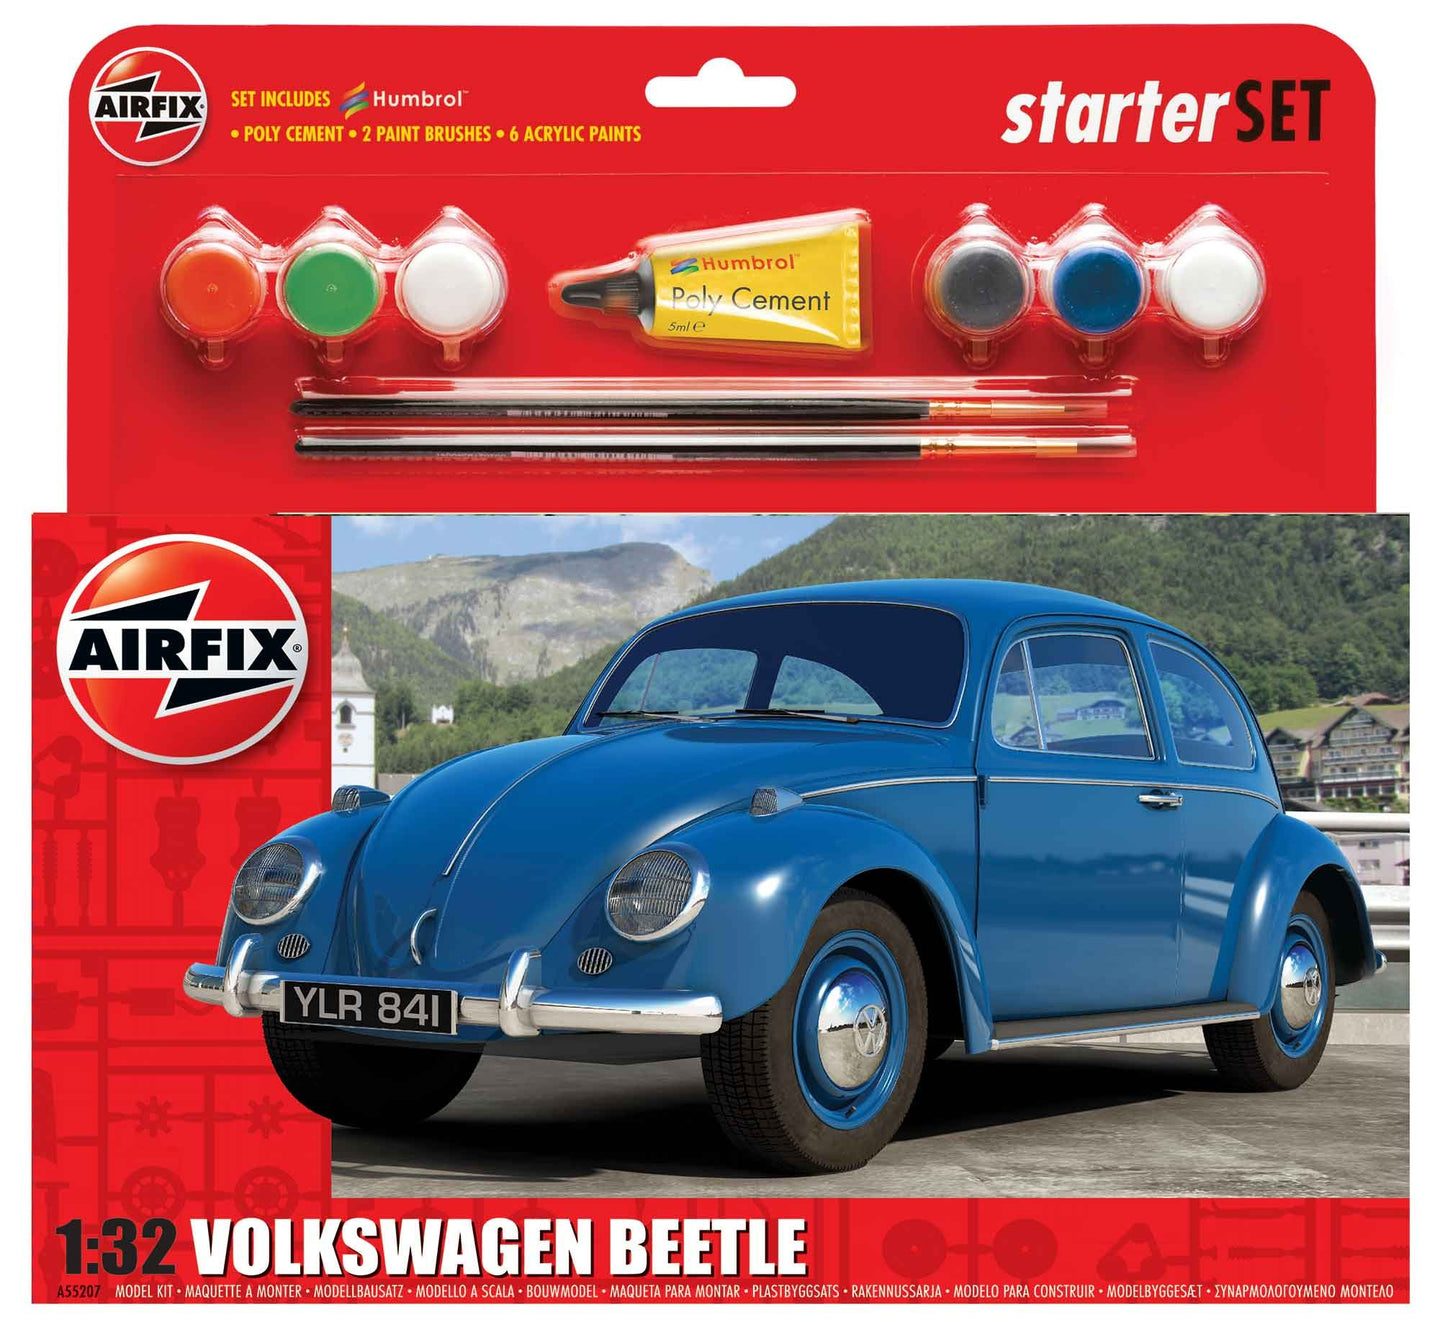 Airfix 1/32 Volkswagen Beetle Plastic Model Kit A55207